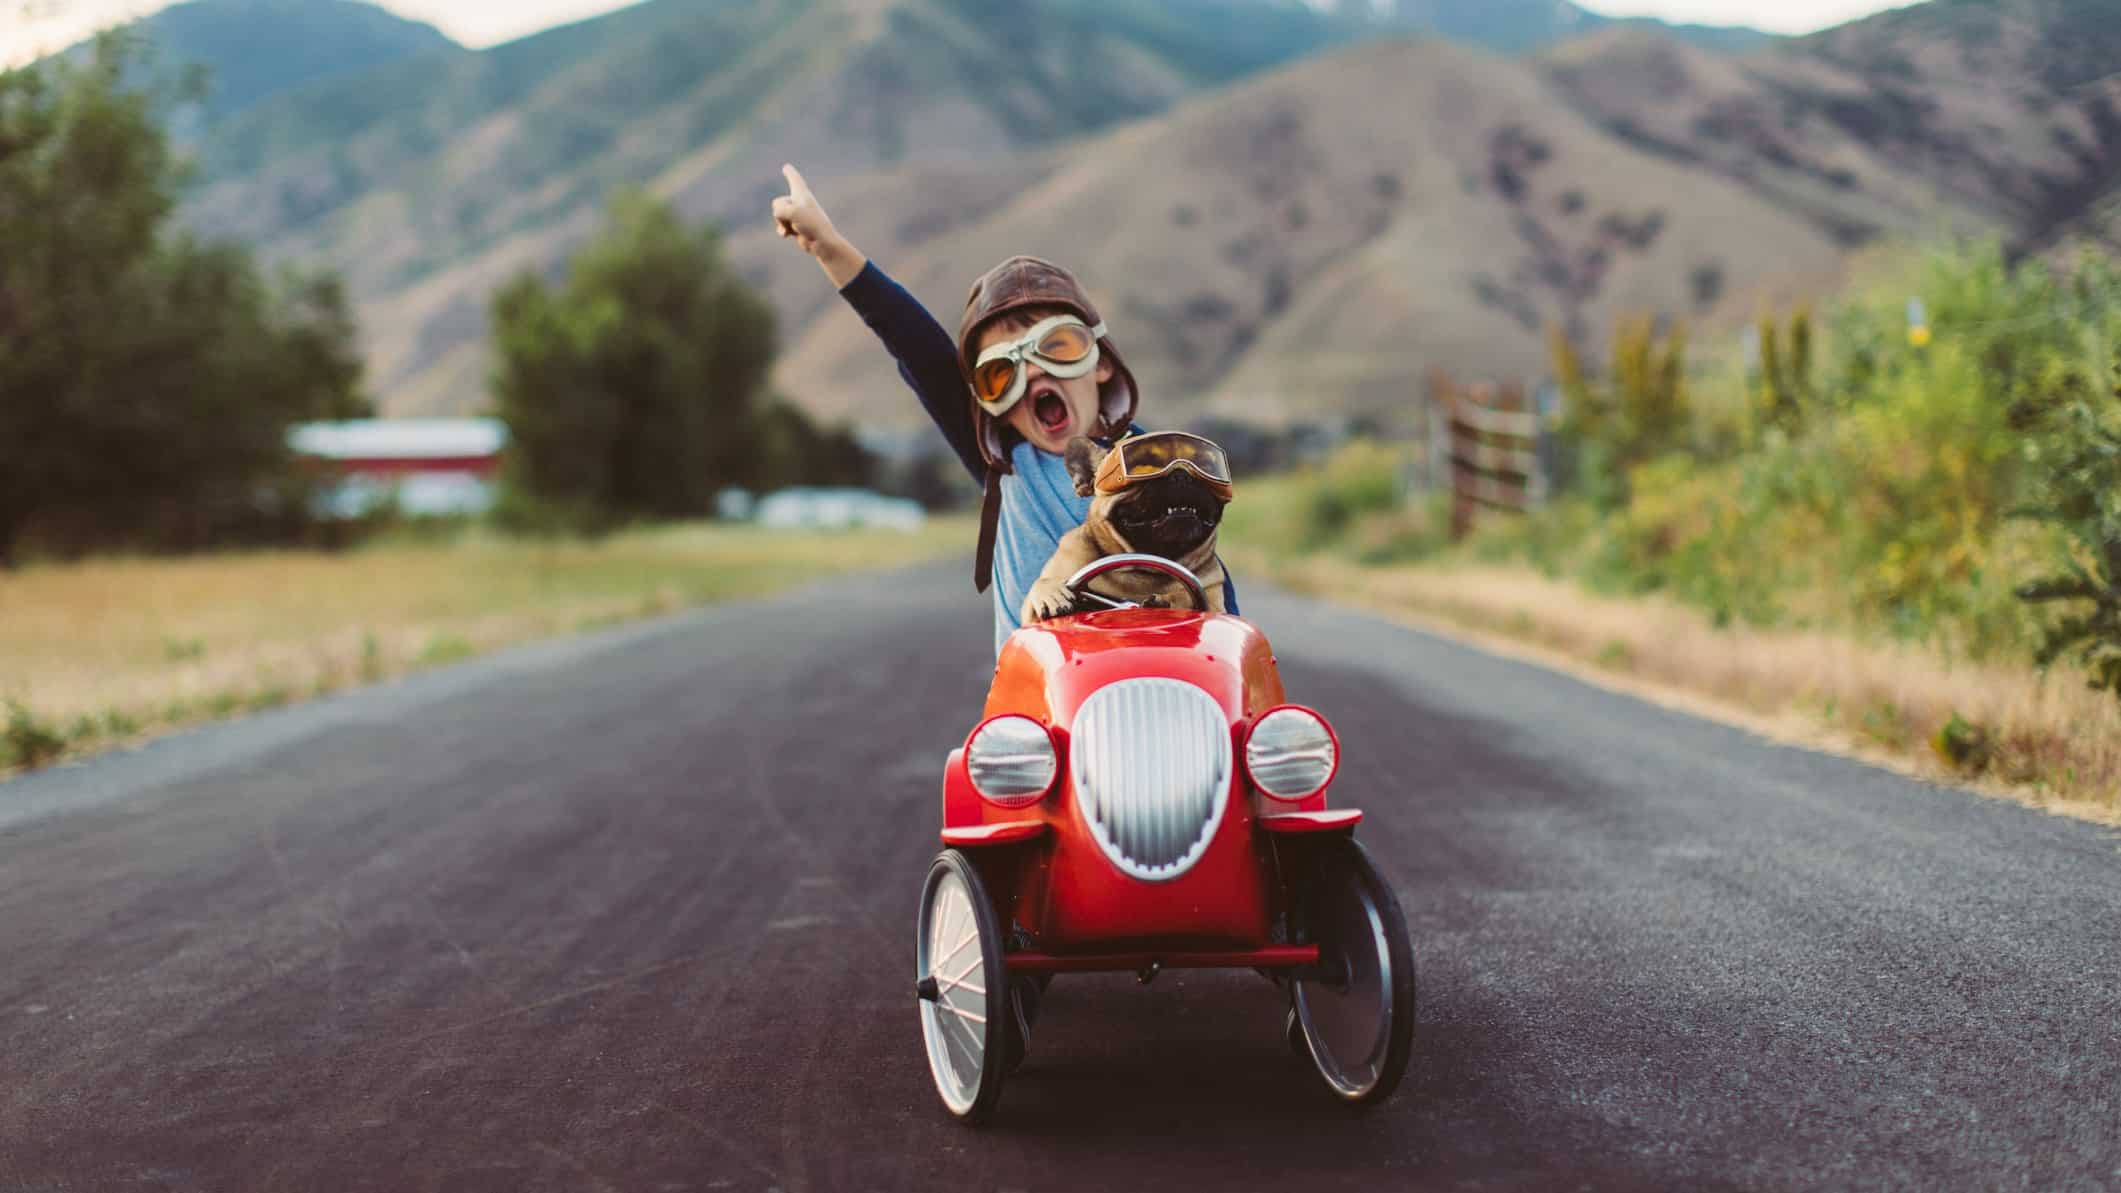 a child in a billy cart style car holds a hand in the air as he drives ahead on an open road.